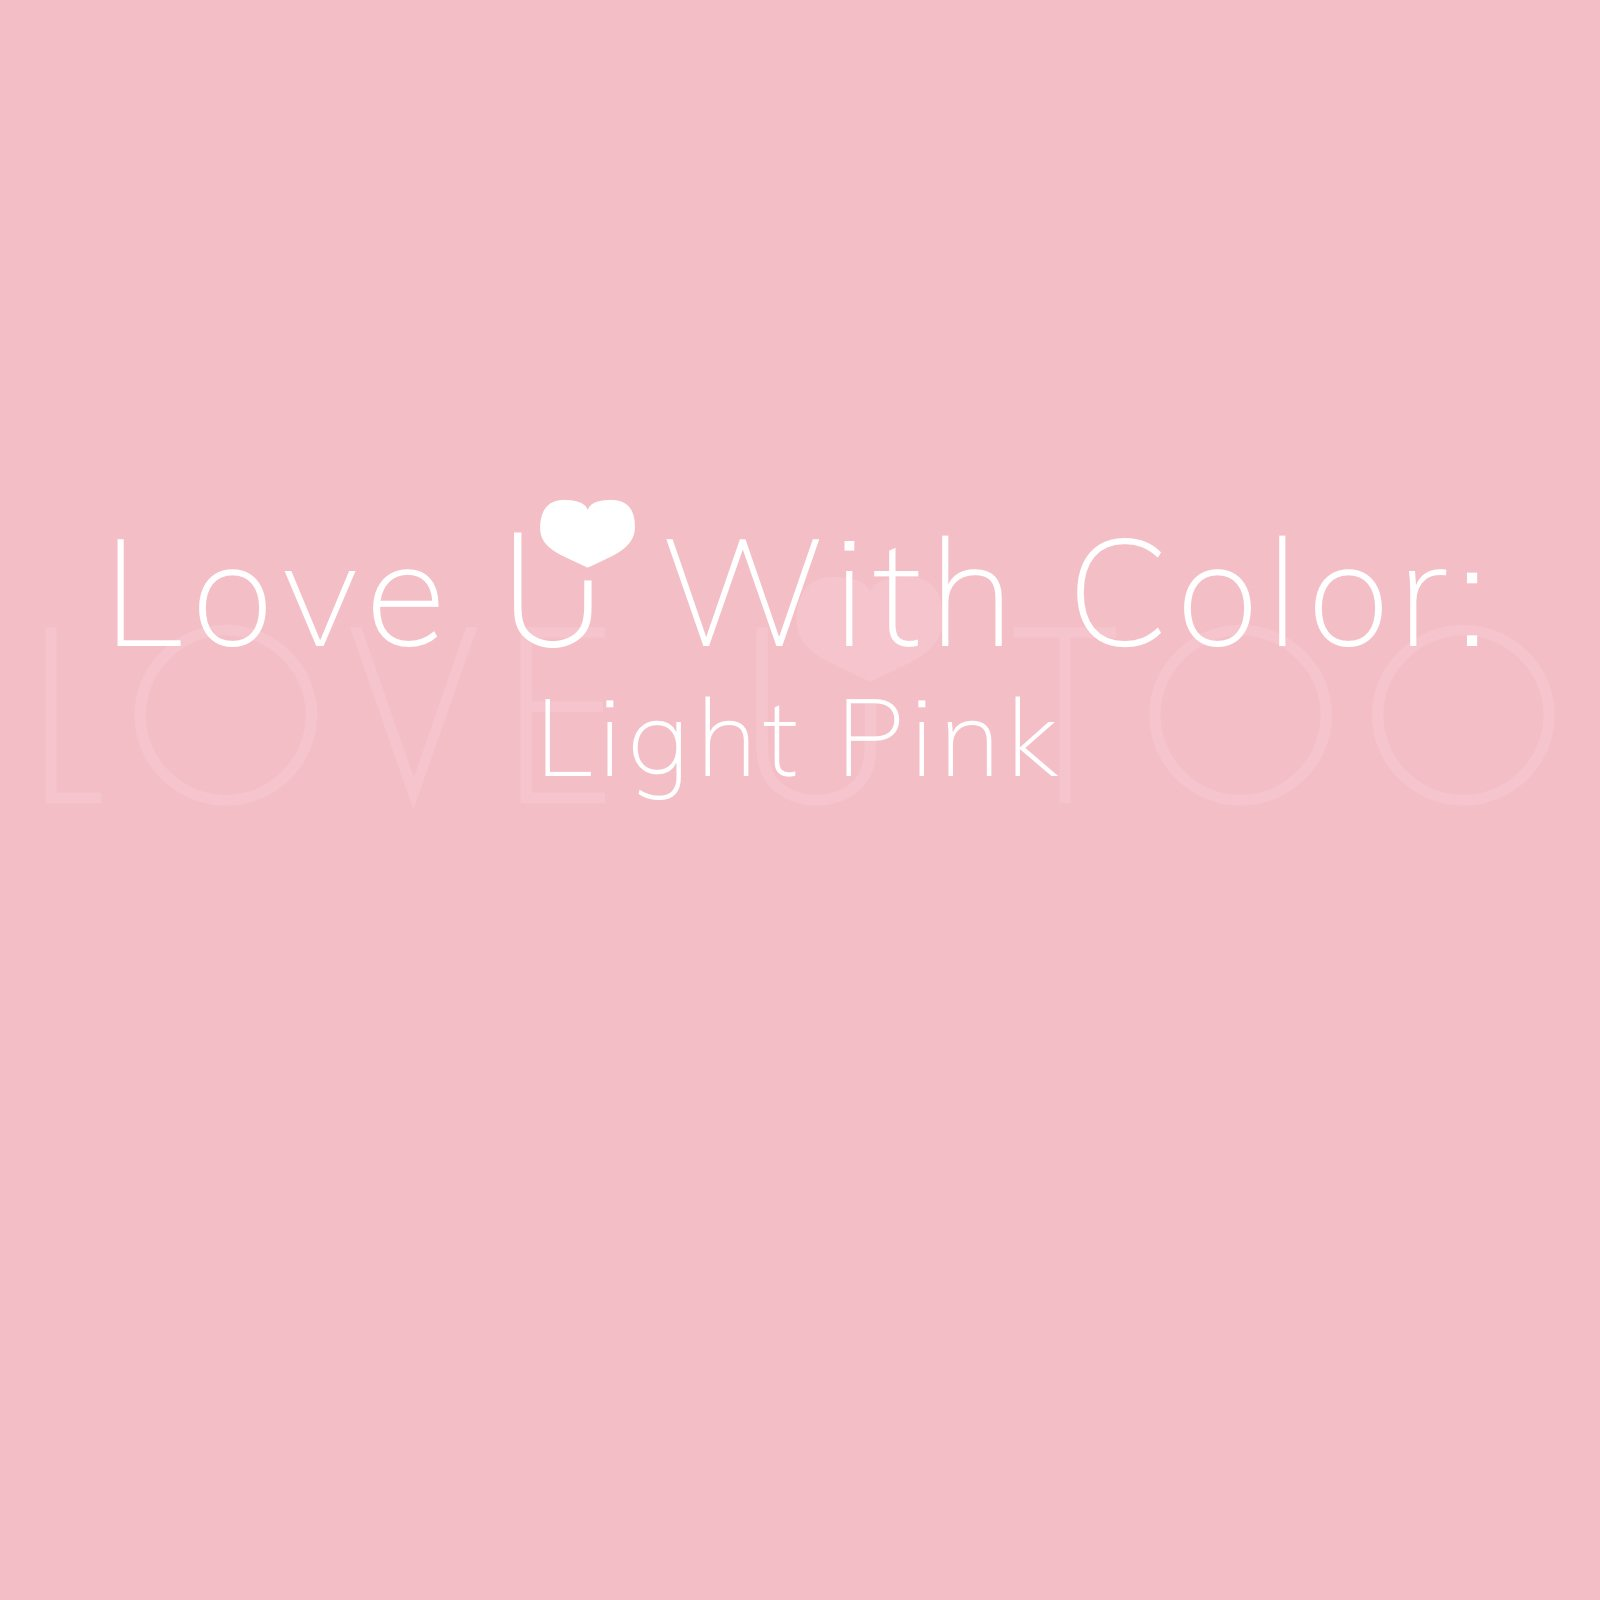 Love U With Color: Light Pink